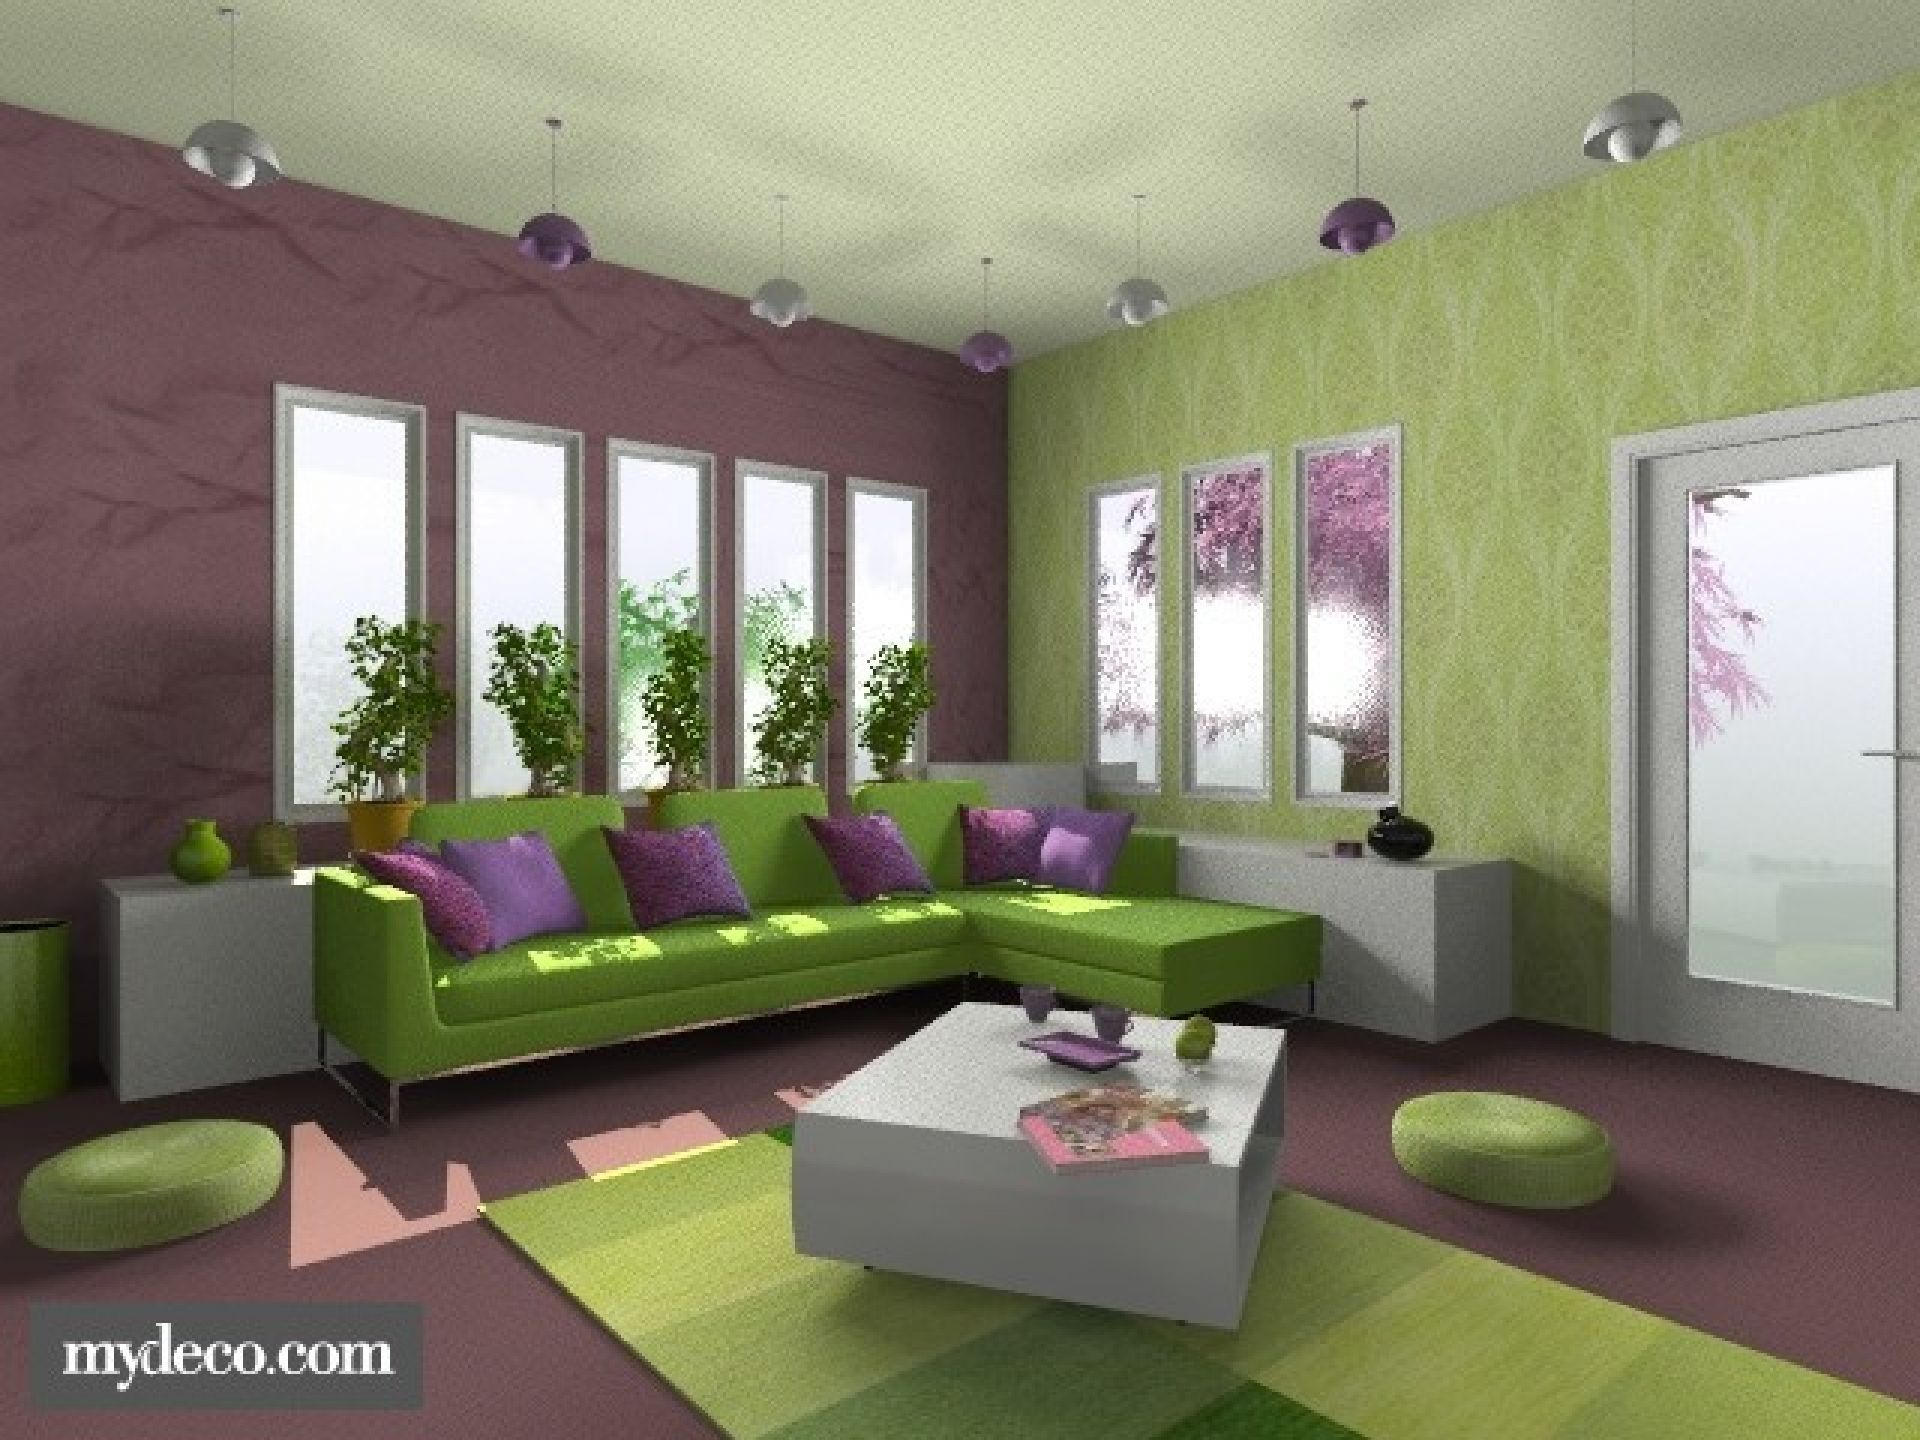 House Colour Combination Interior Cheerful Kids Room Design With Green And White Color Schemes Ideas Awesome Combinations For Living